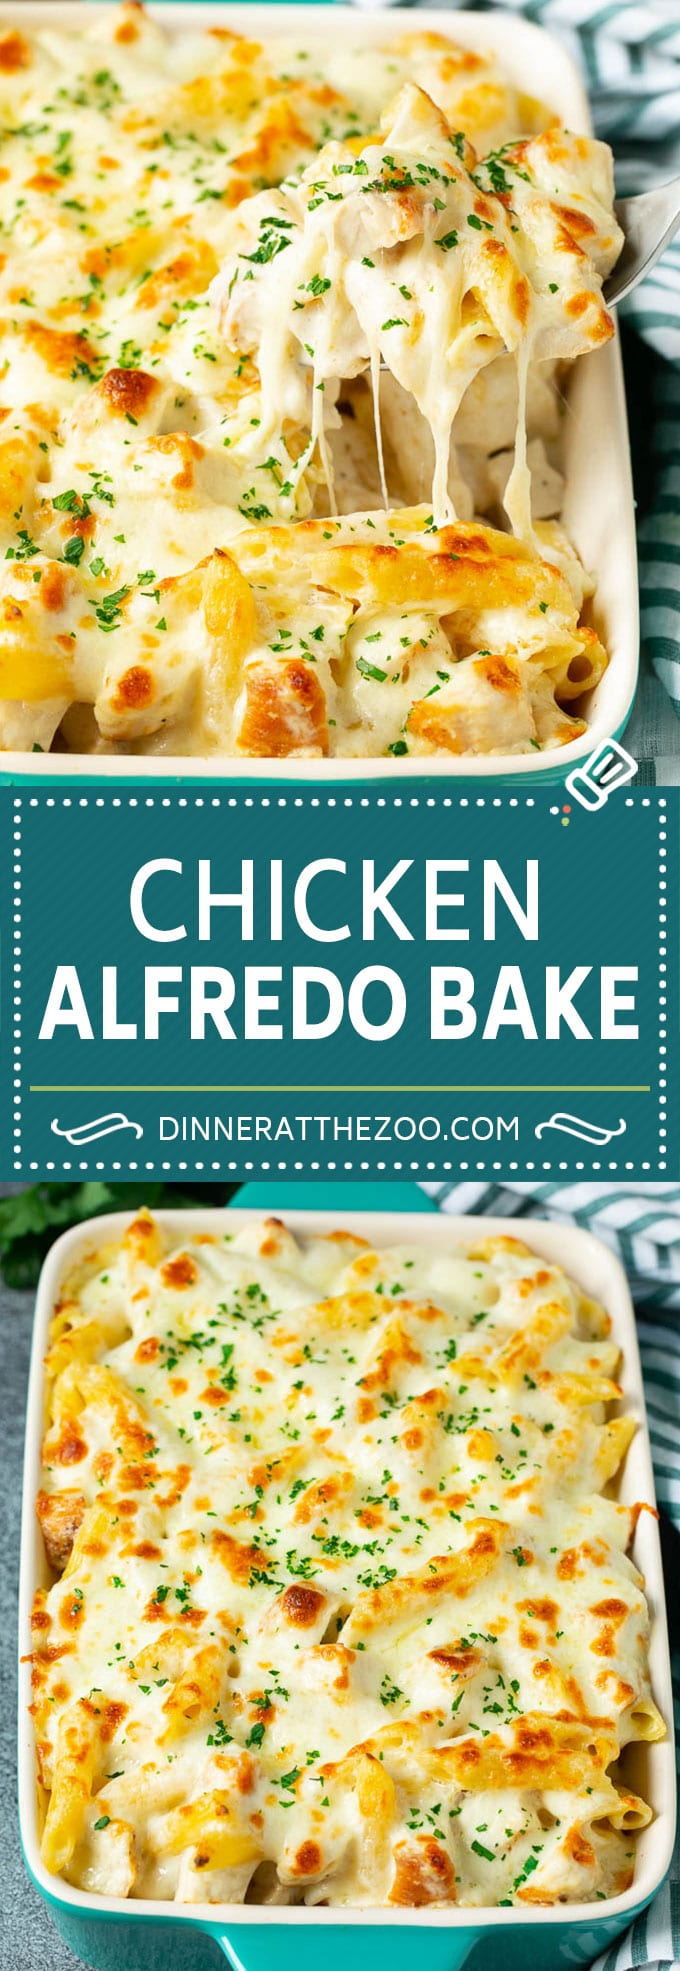 Chicken Alfredo Bake | Baked Pasta #chicken #pasta #cheese #comfortfood #dinner #dinneratthezoo